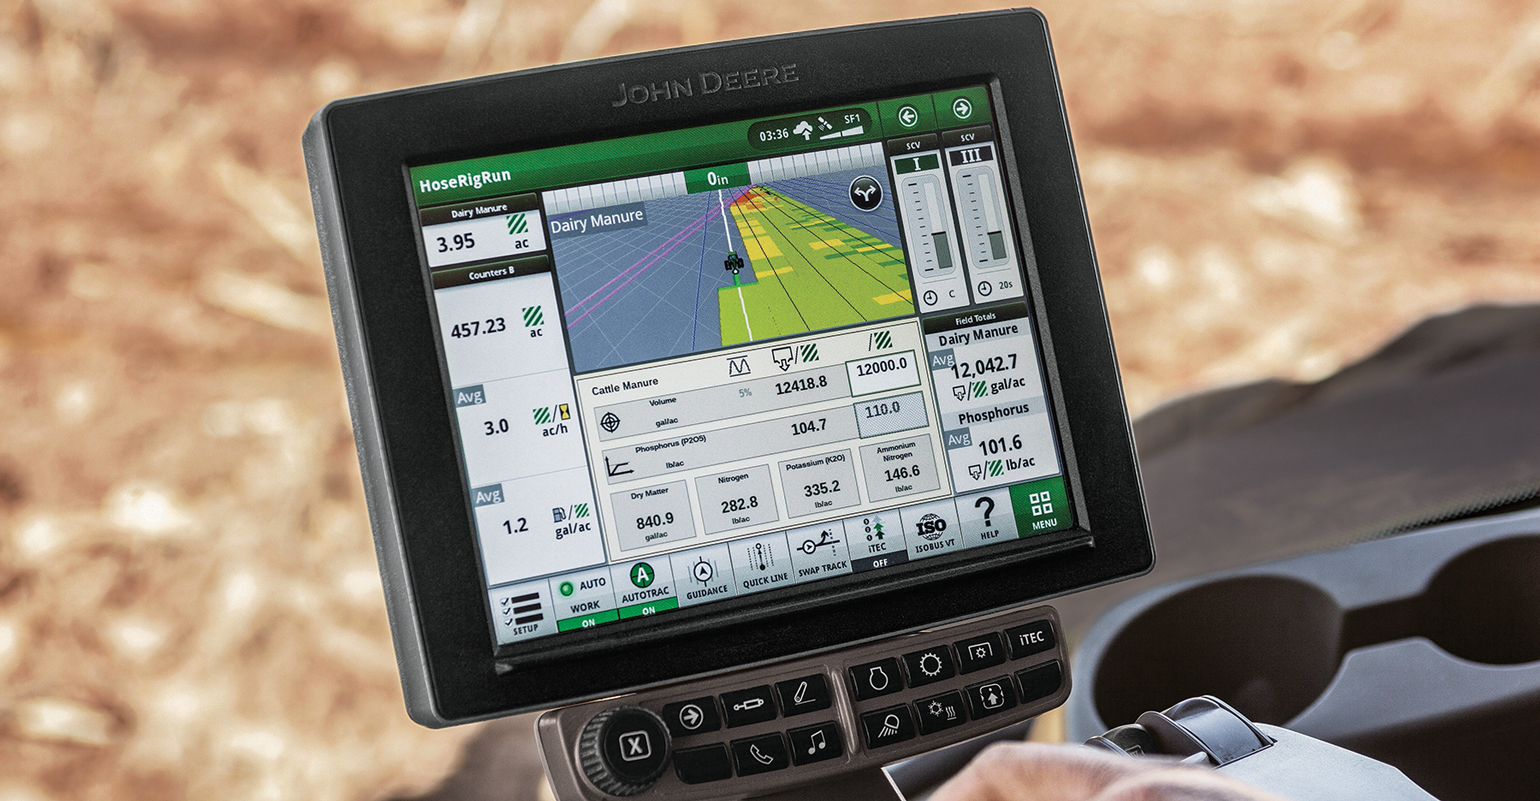 John Deere monitor in tractor cab